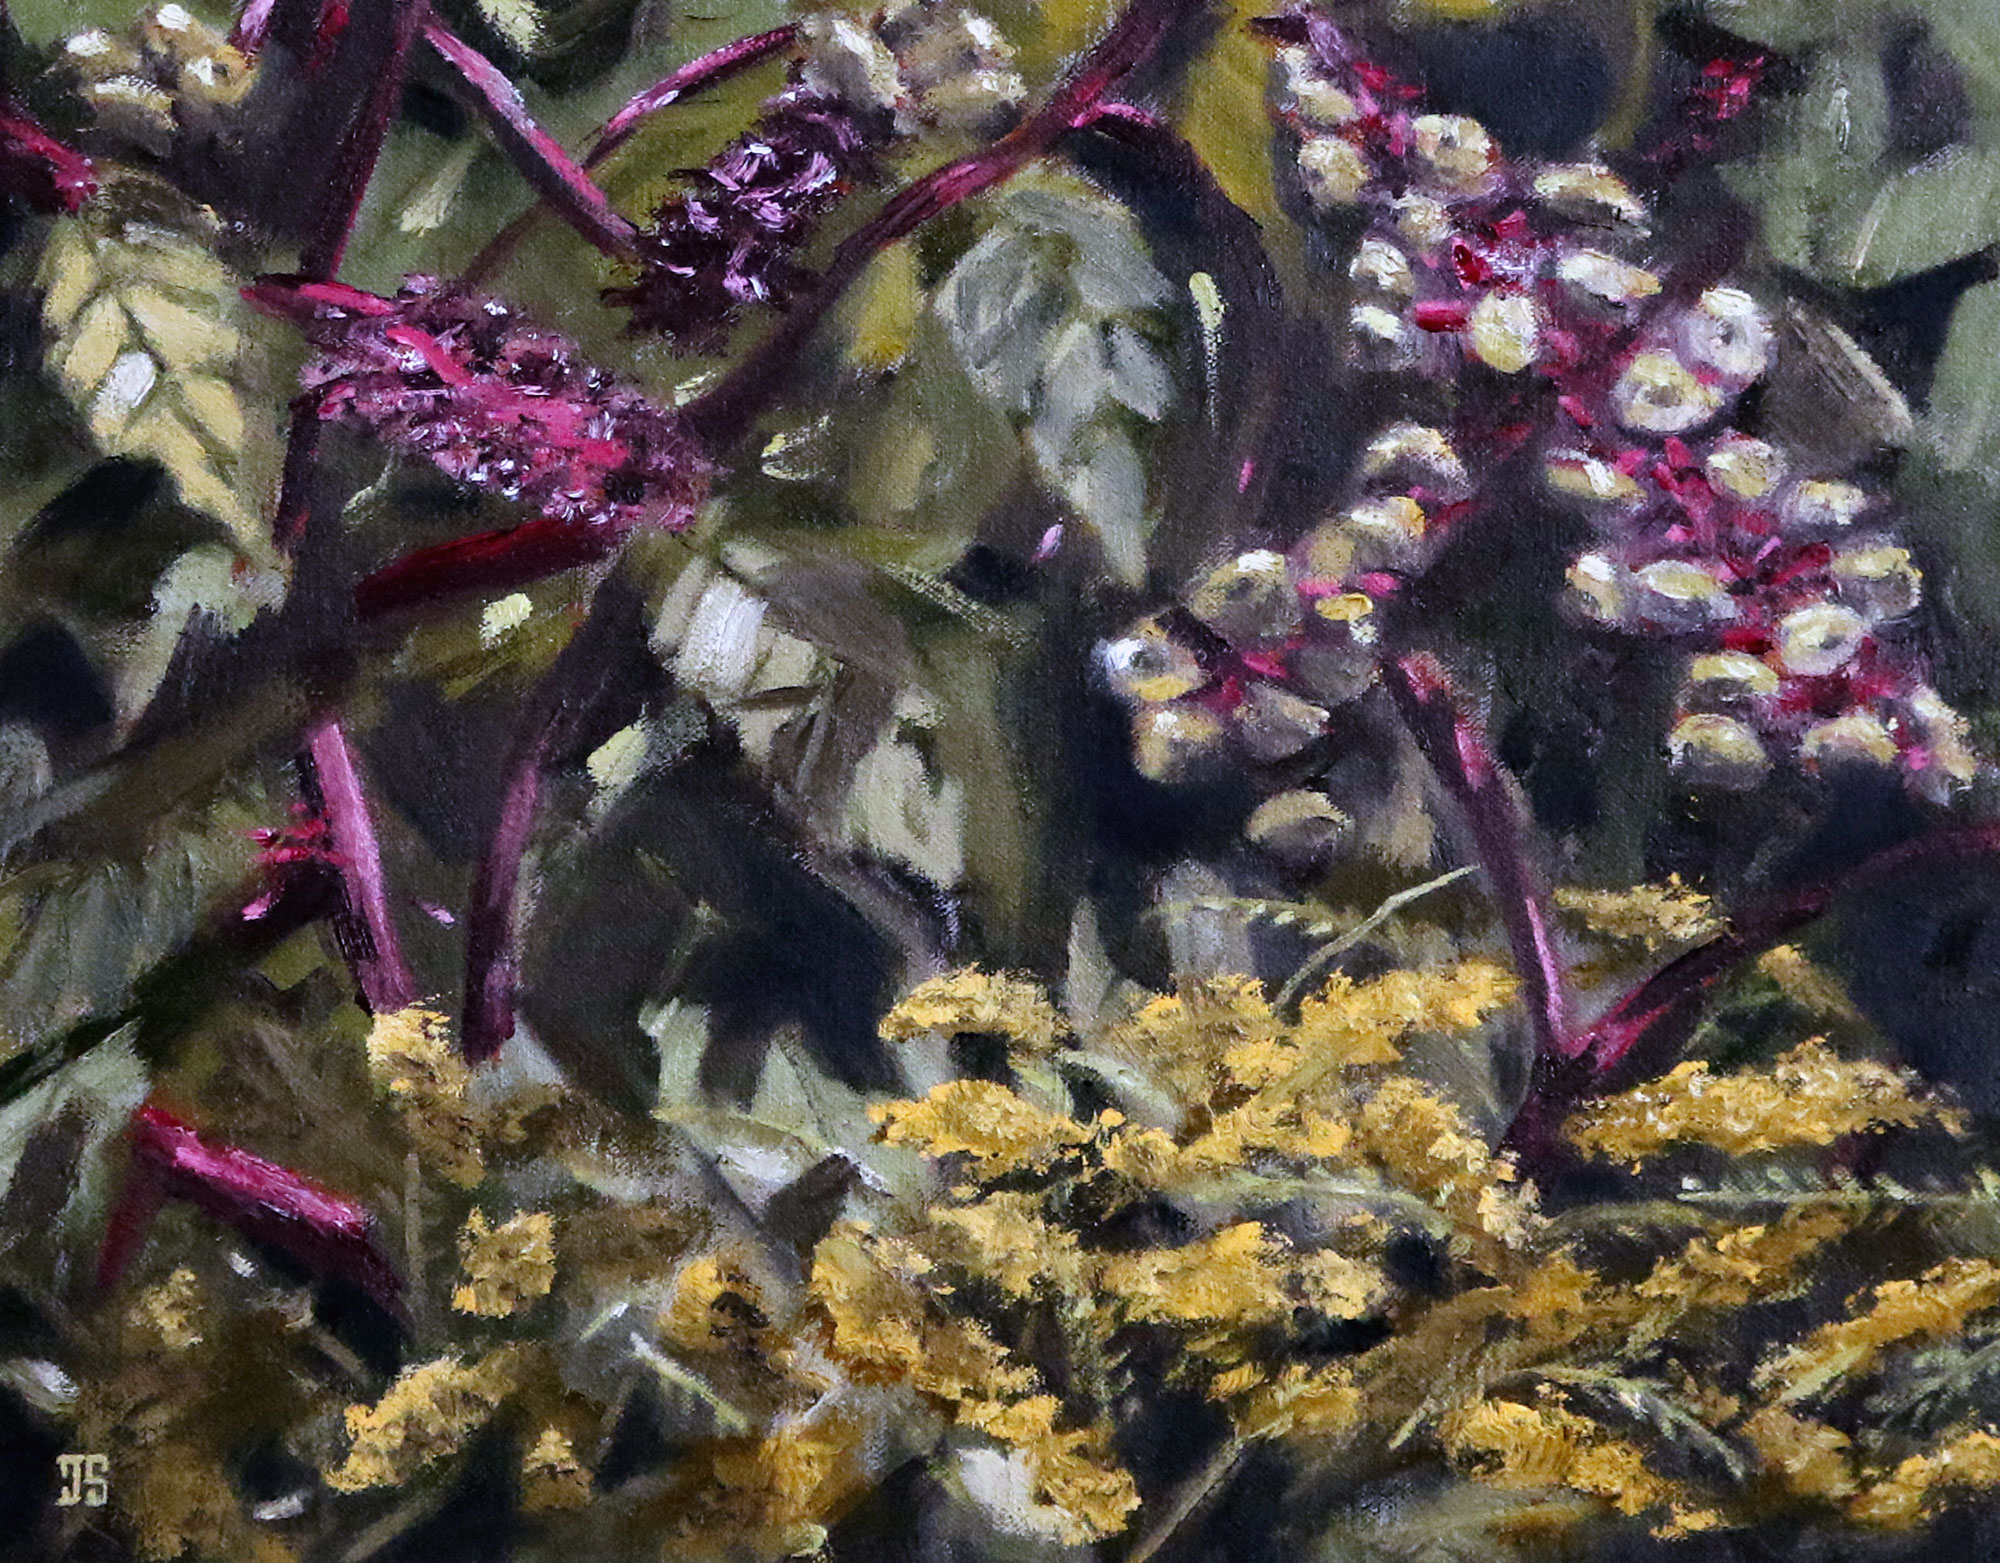 Pokeweed Berries and Goldenrod by Jeffrey Dale Starr